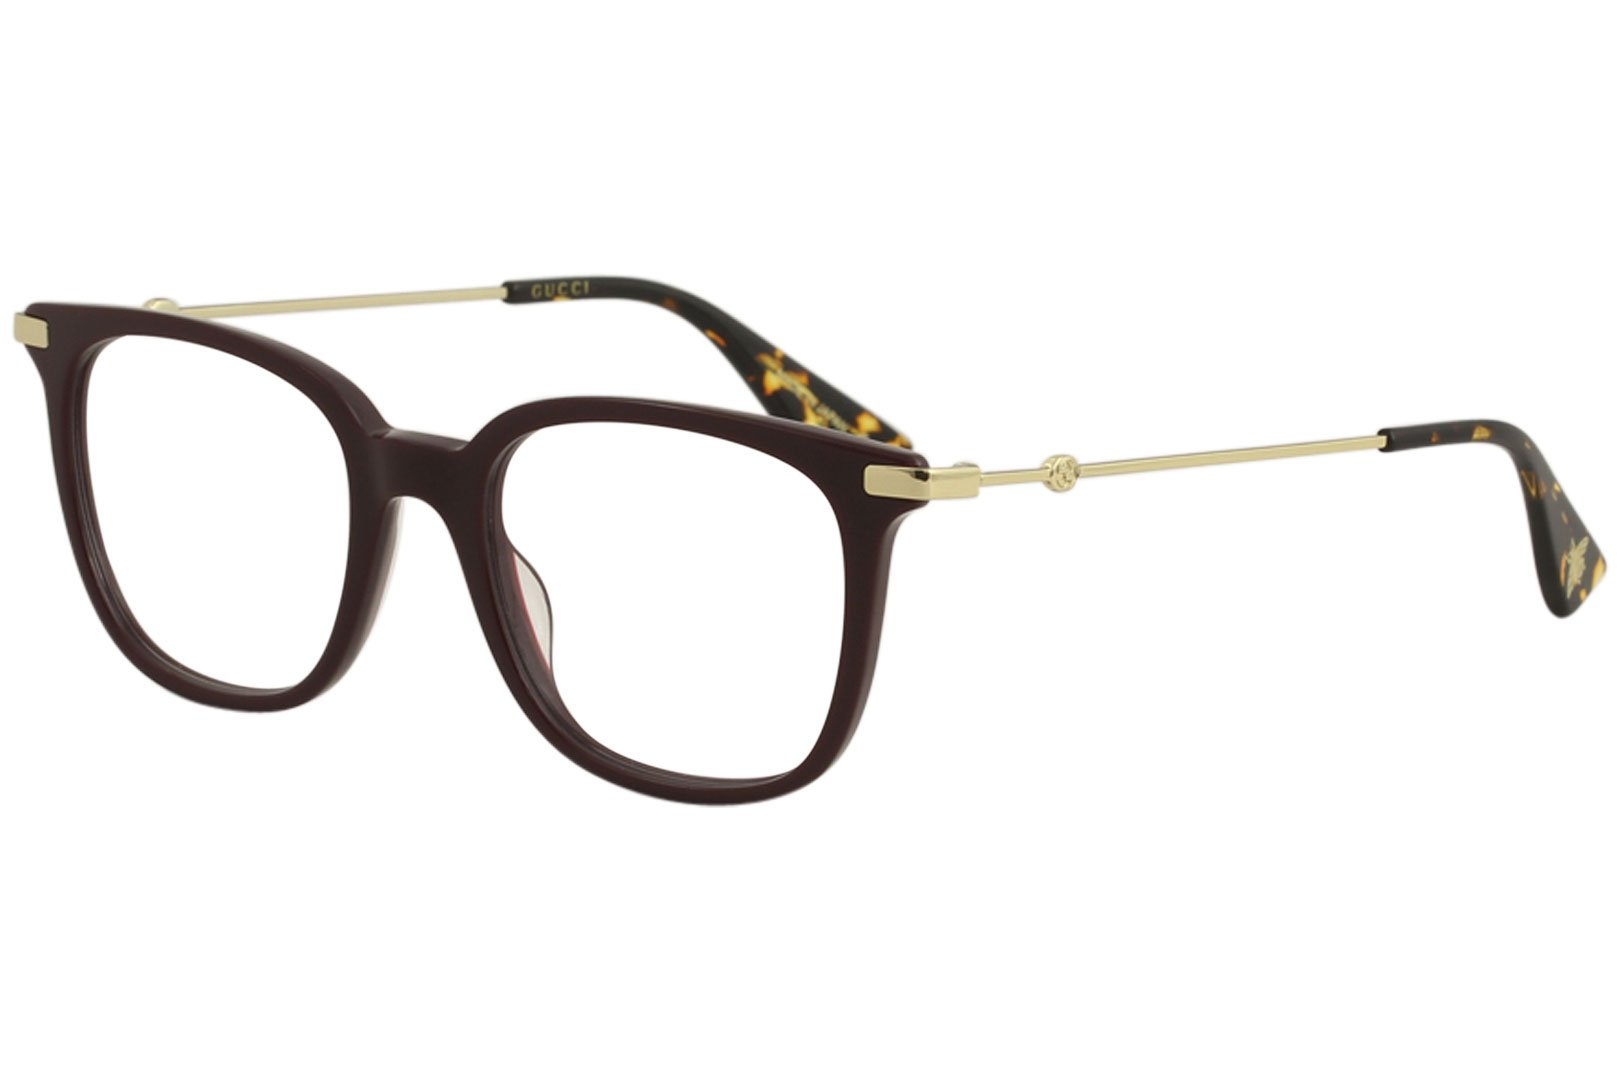 Gucci Women's Eyeglasses GG0110O GG/0110/O 006 Burgundy/Gold Optical Frame 49mm